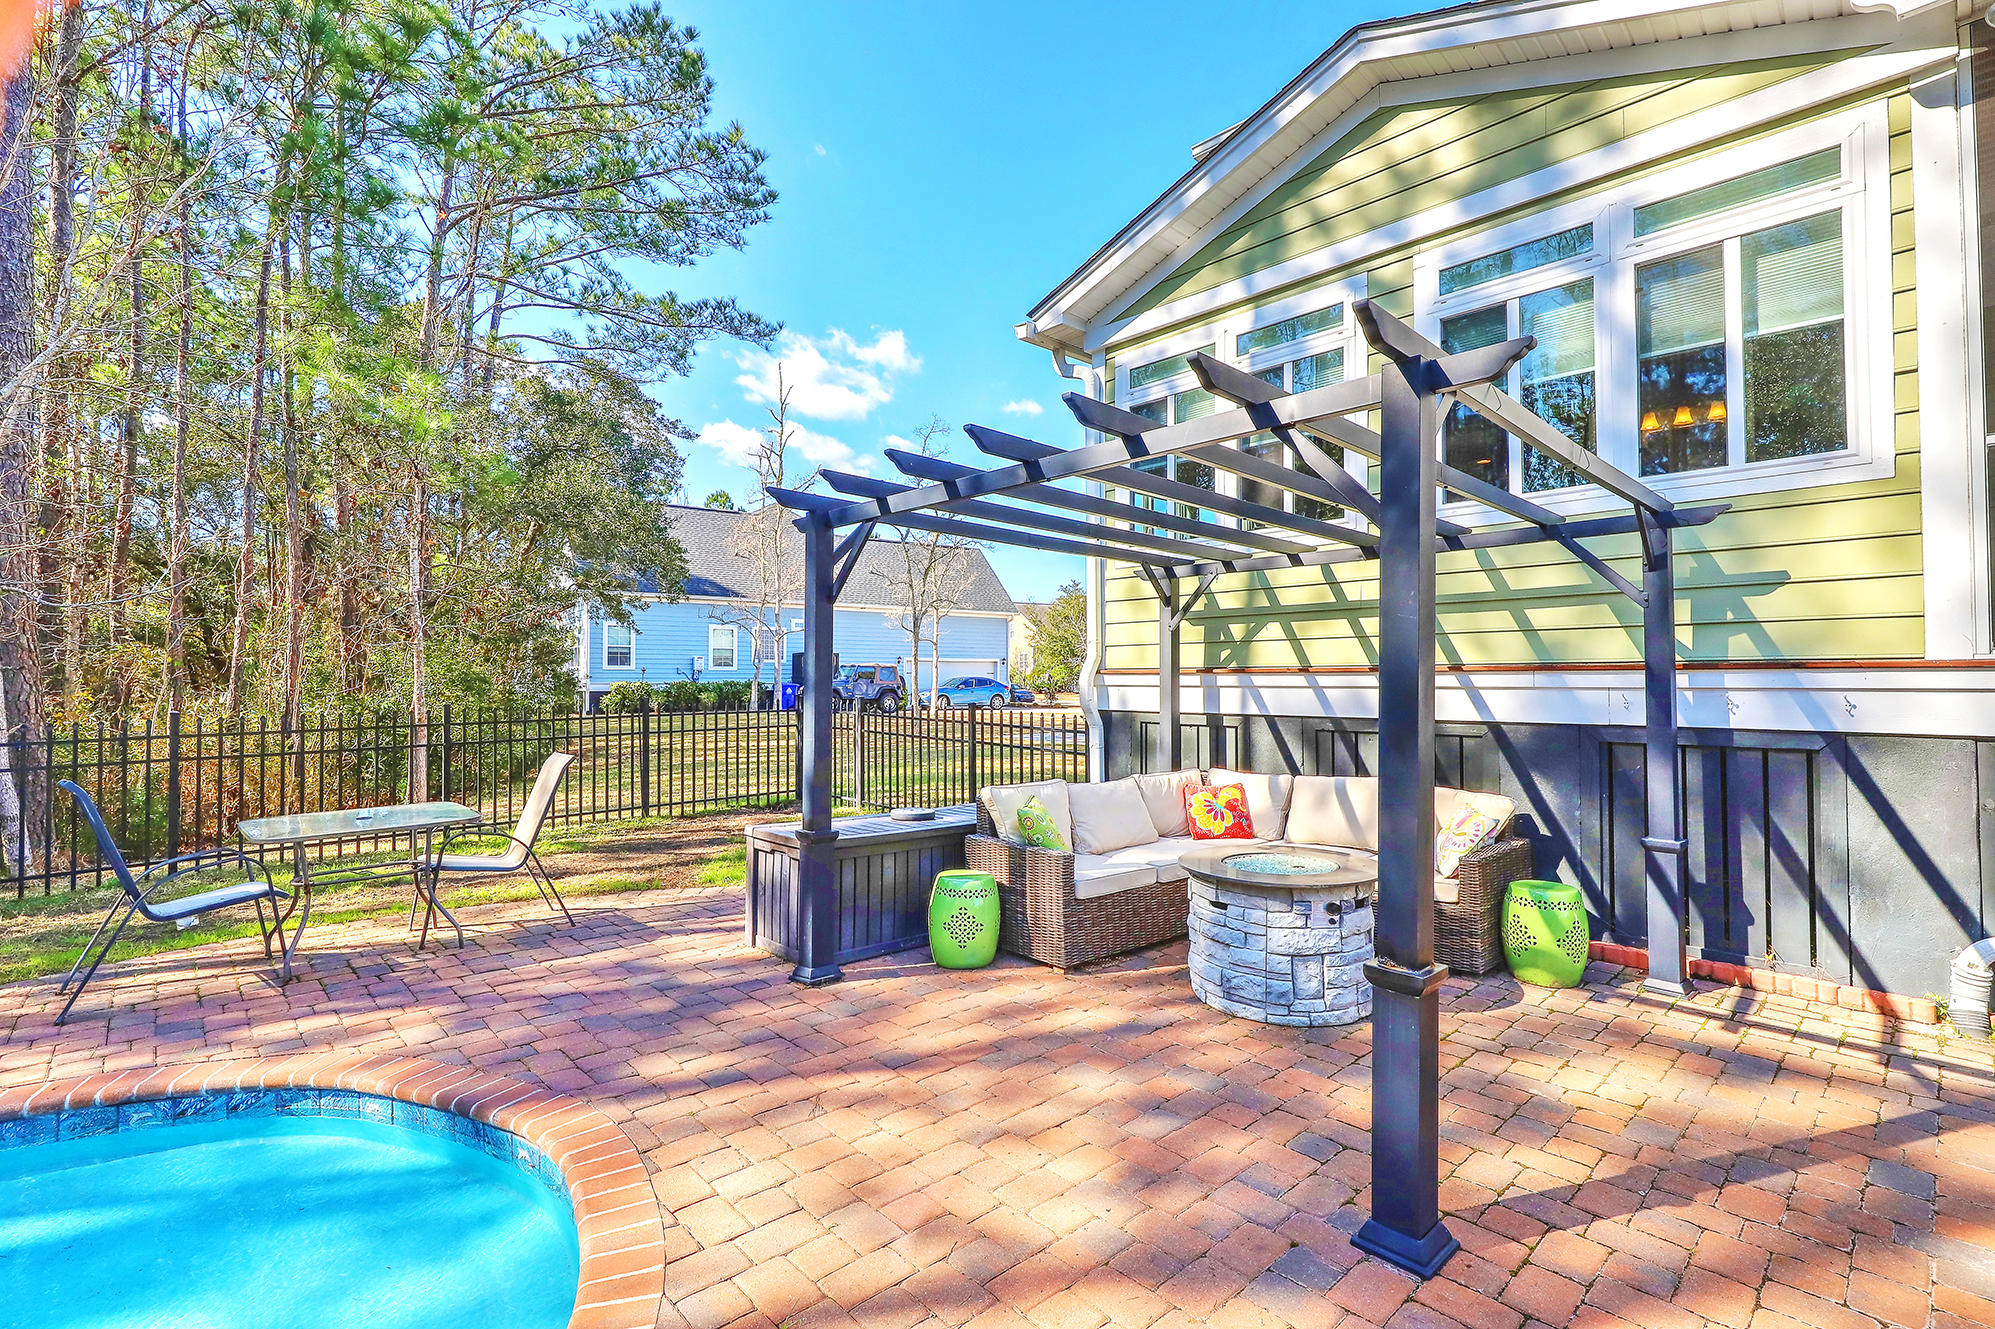 Rivertowne On The Wando Homes For Sale - 2105 Sandy Point, Mount Pleasant, SC - 23